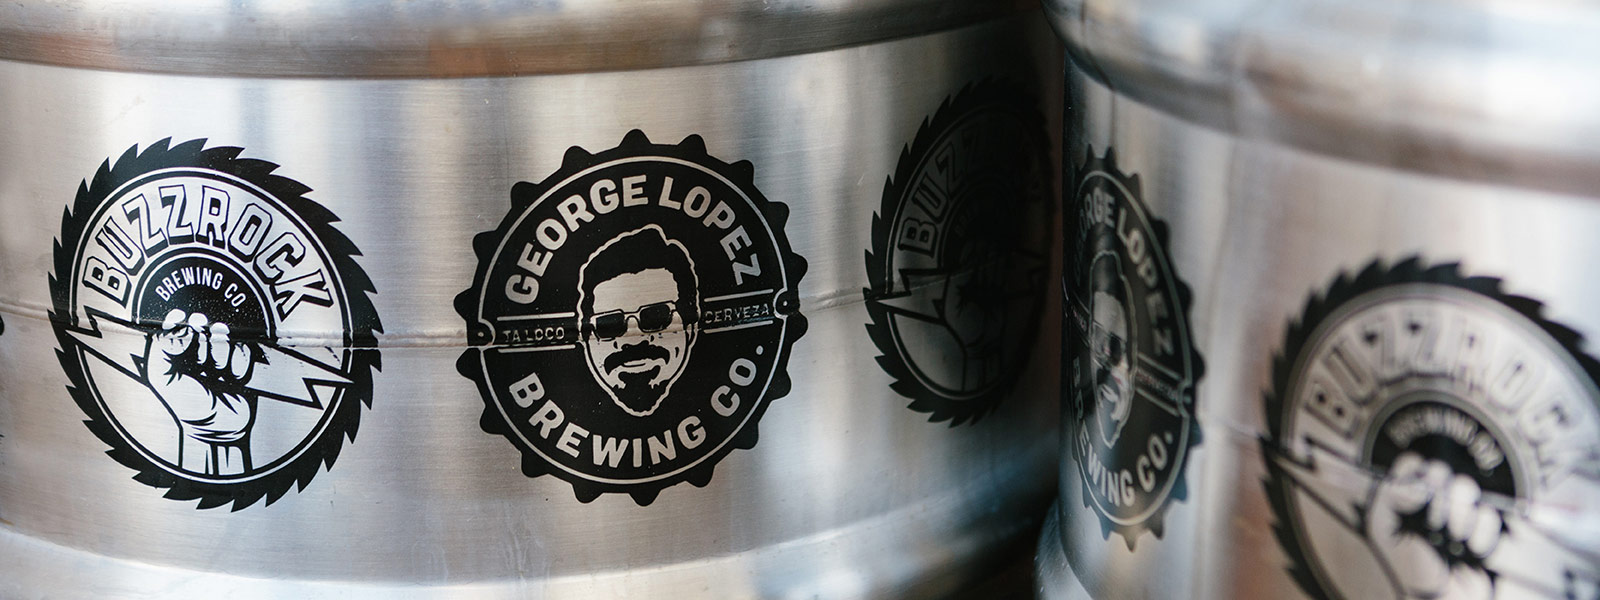 Buzzrock Brewing Co. and George Lopez Brewing Co. kegs at The Brews Hall @ Del Amo